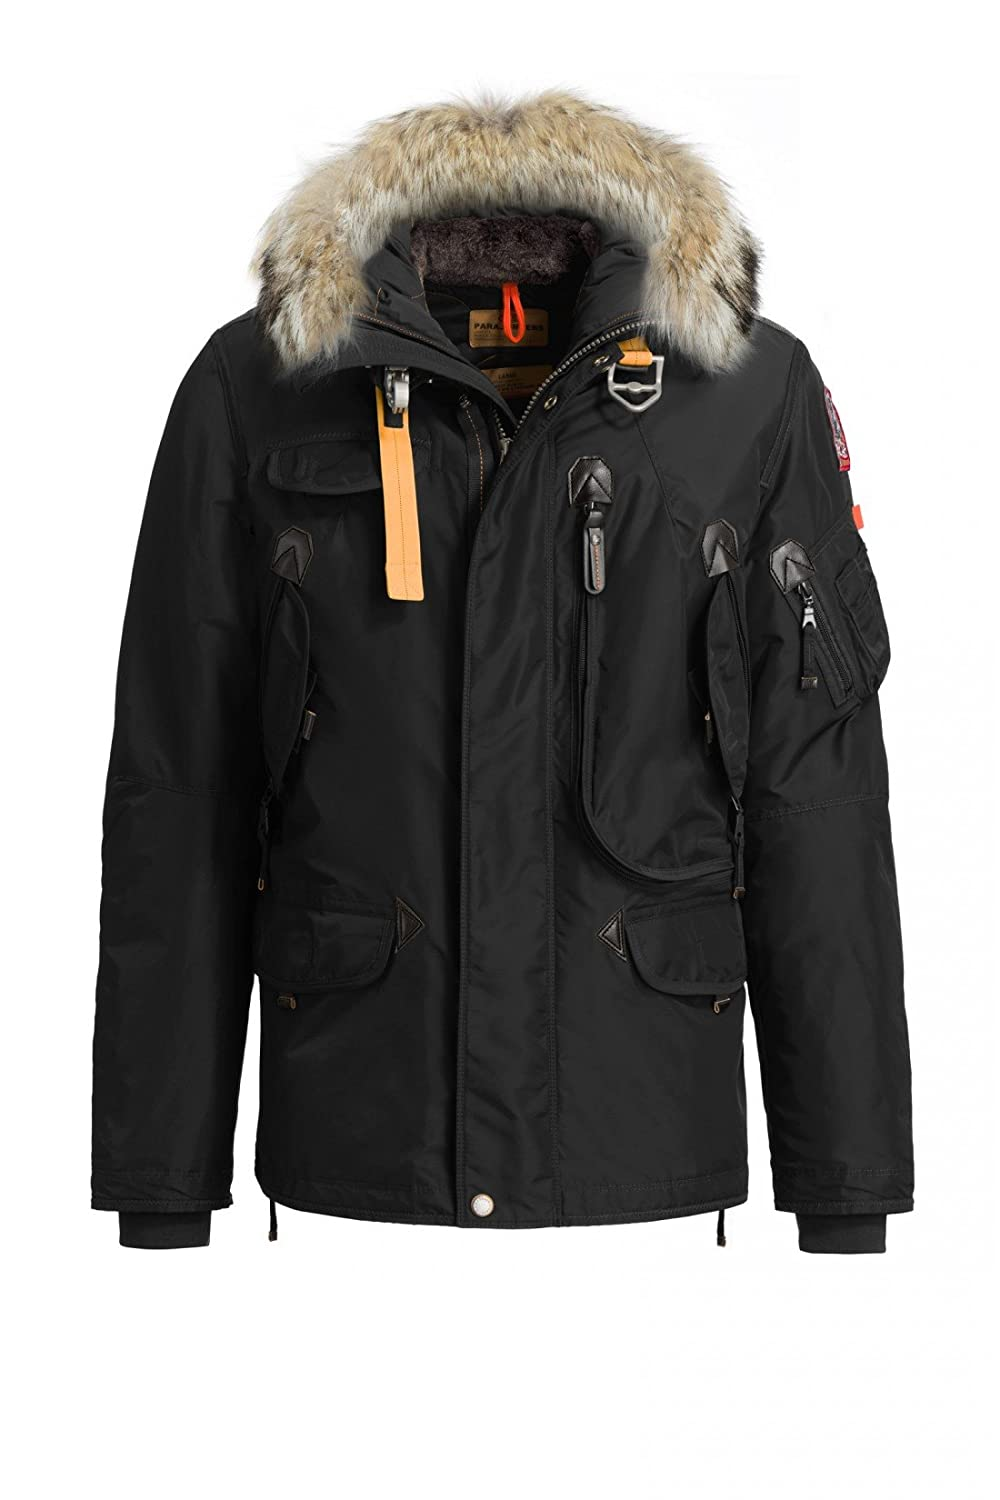 Parajumpers Jacket Righthand in Black